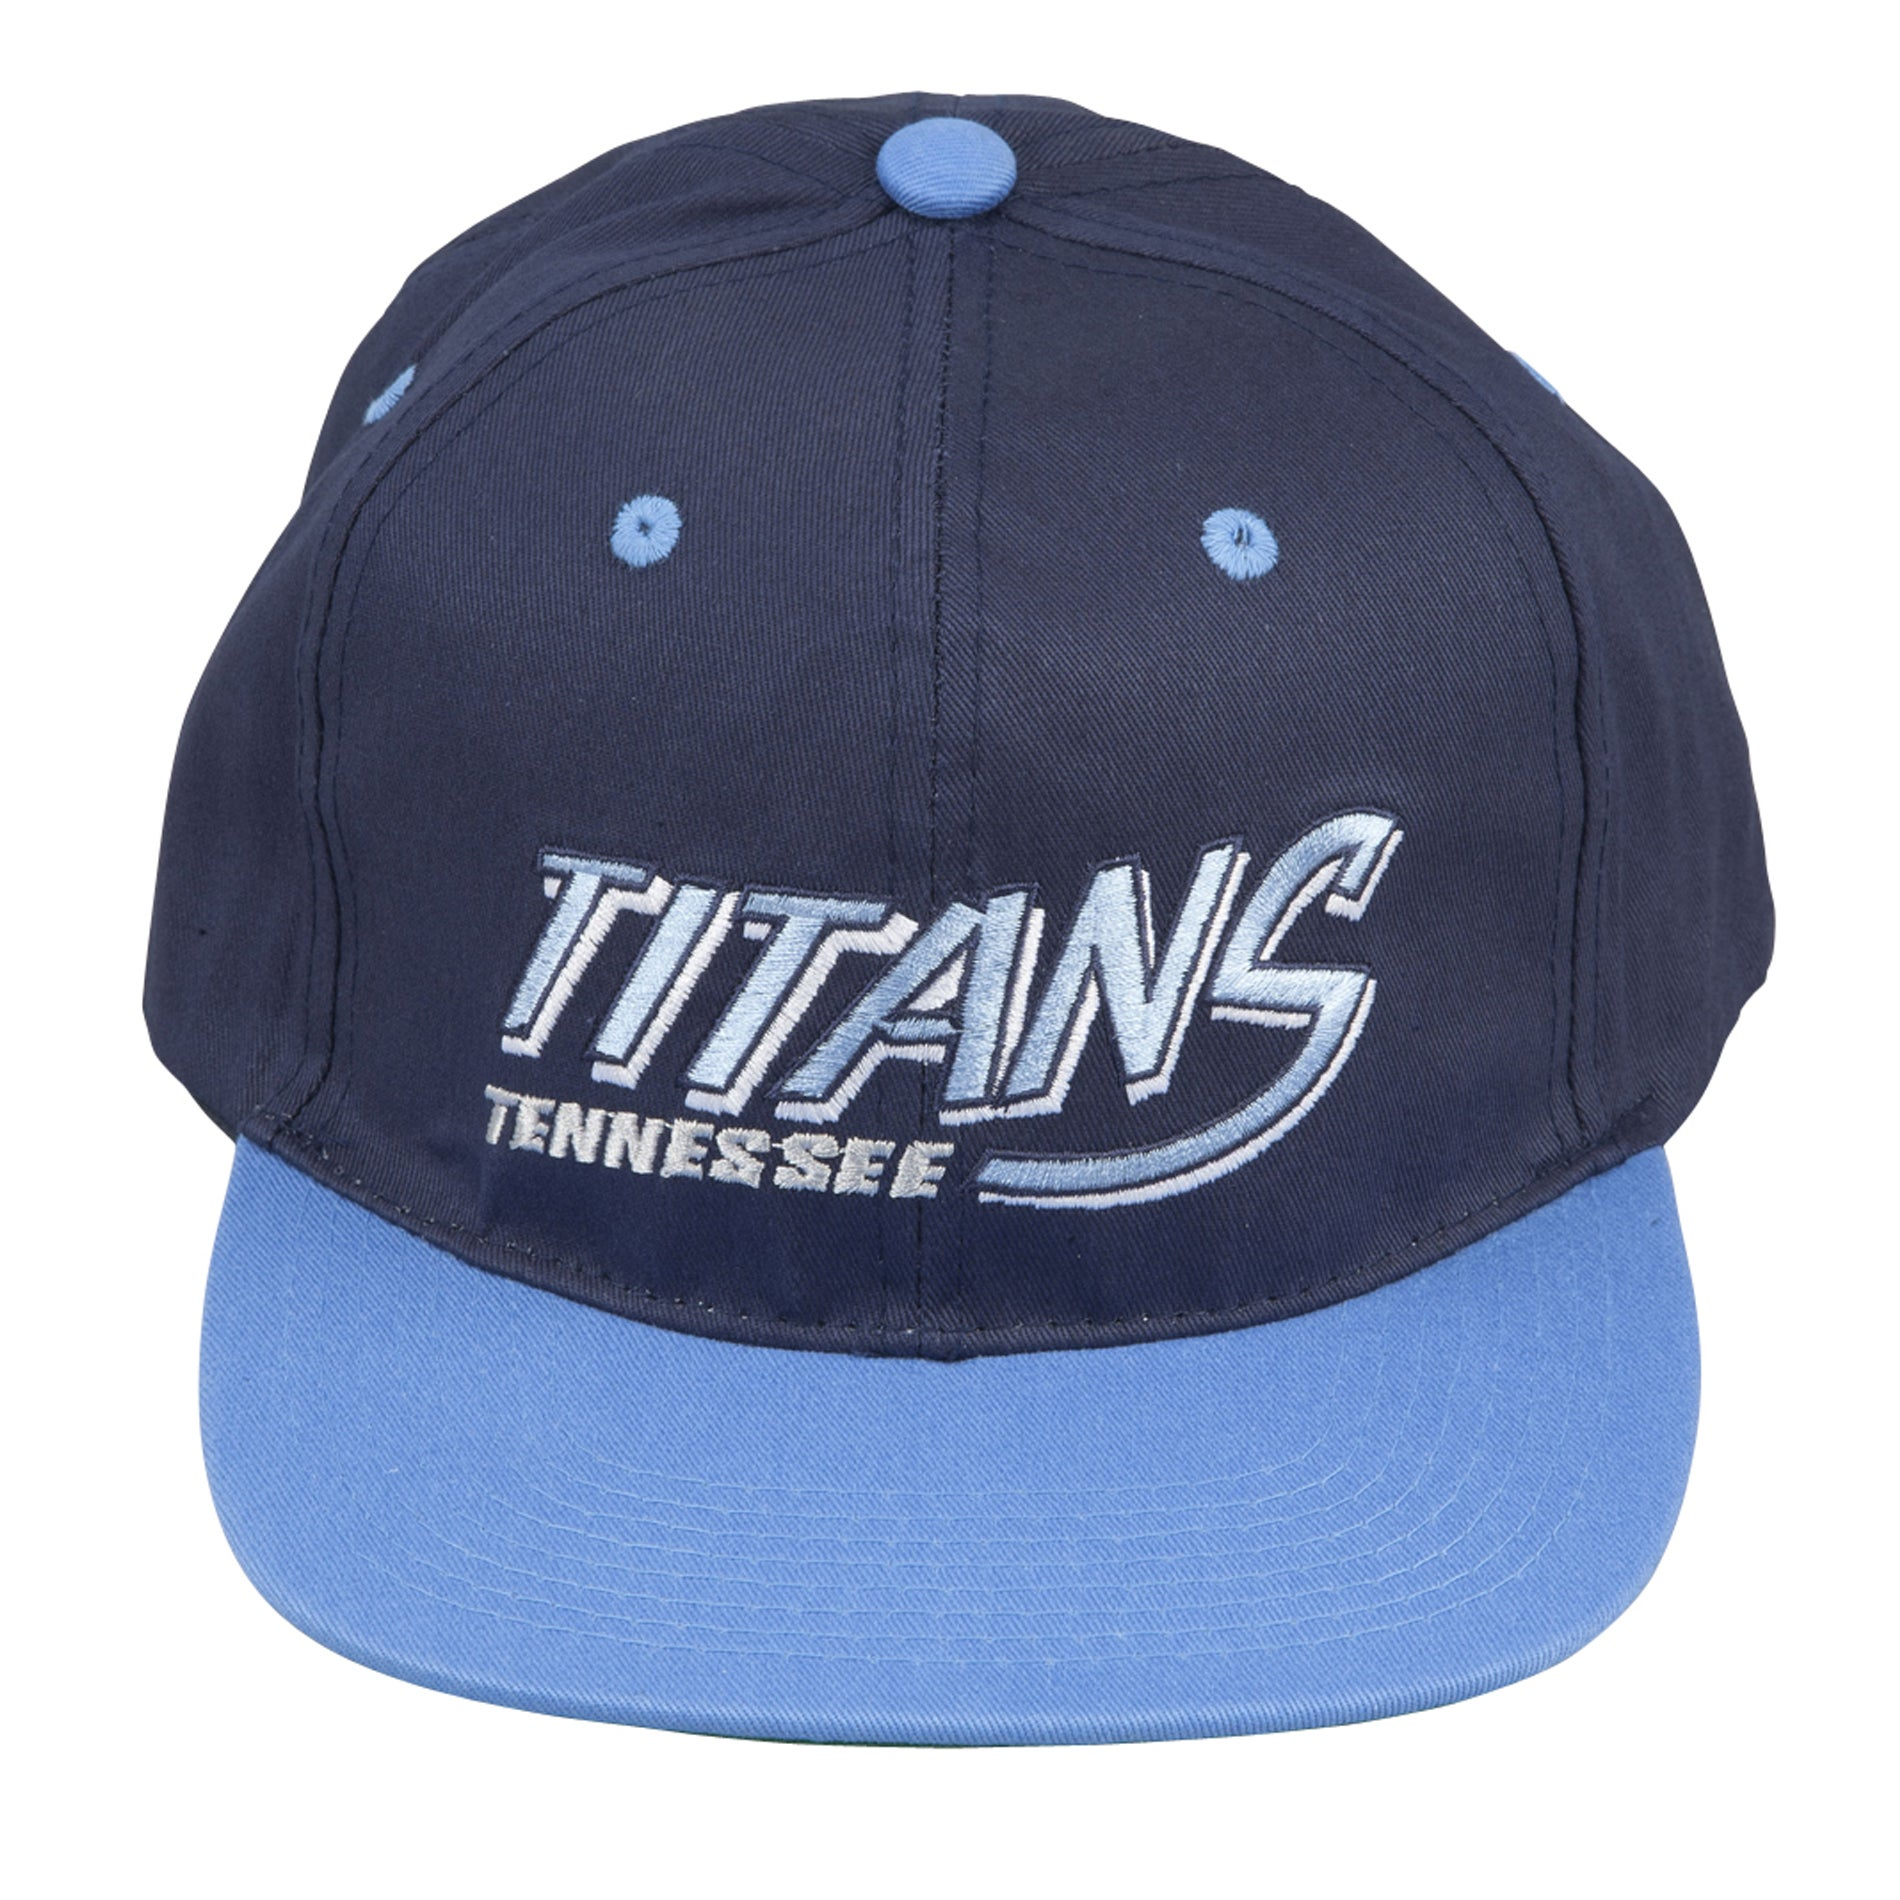 Shop Tennessee Titans Retro NFL Snapback Hat Free Shipping On